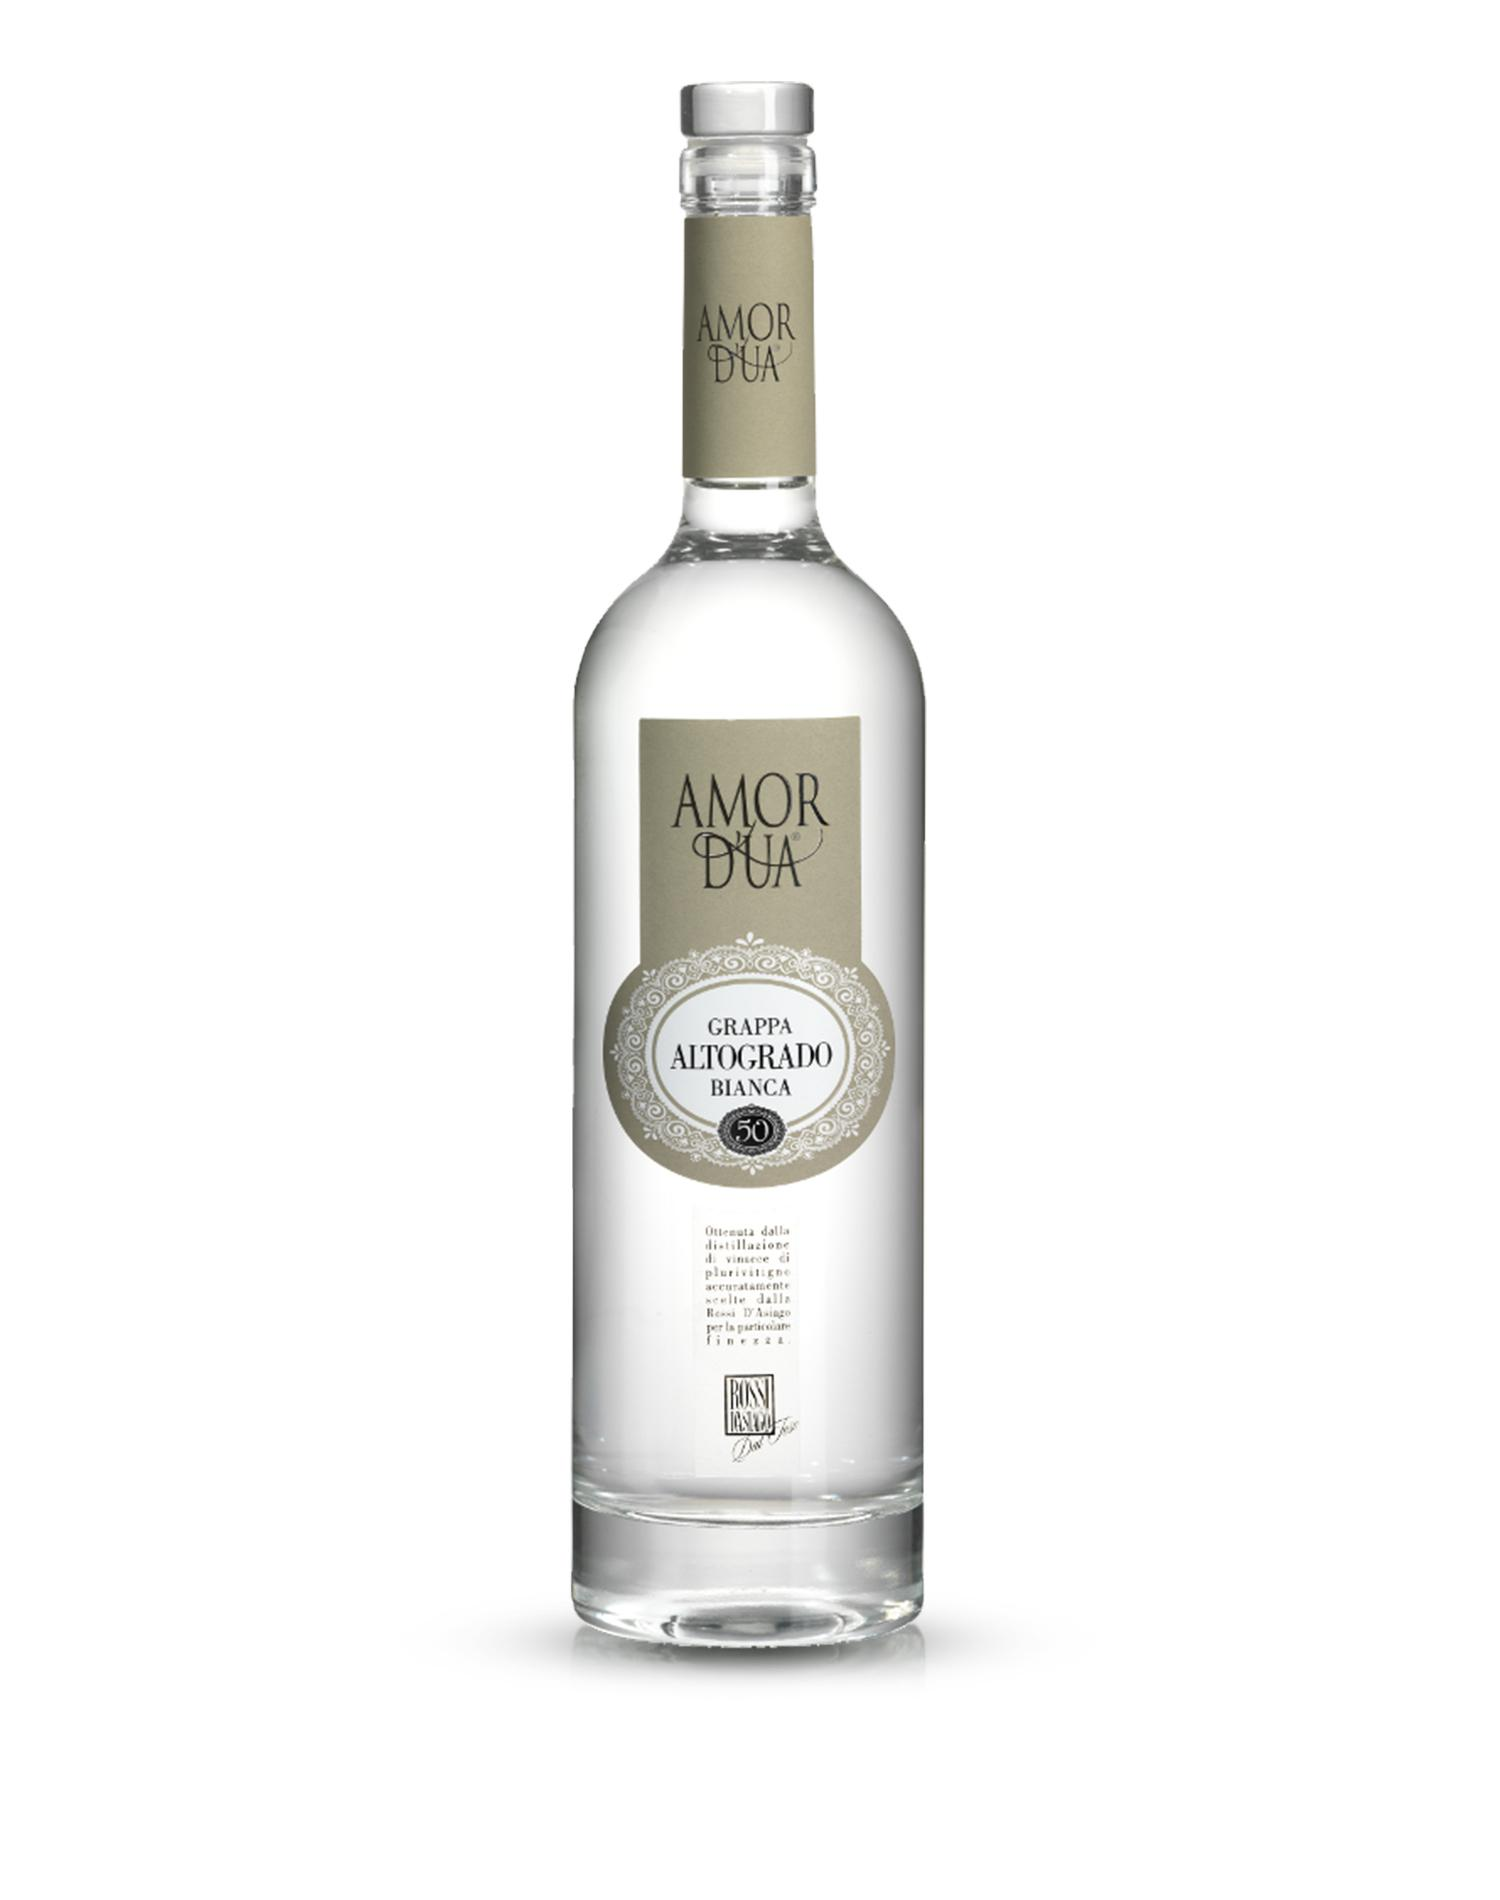 Amor D'Ua Grappa Altogrado